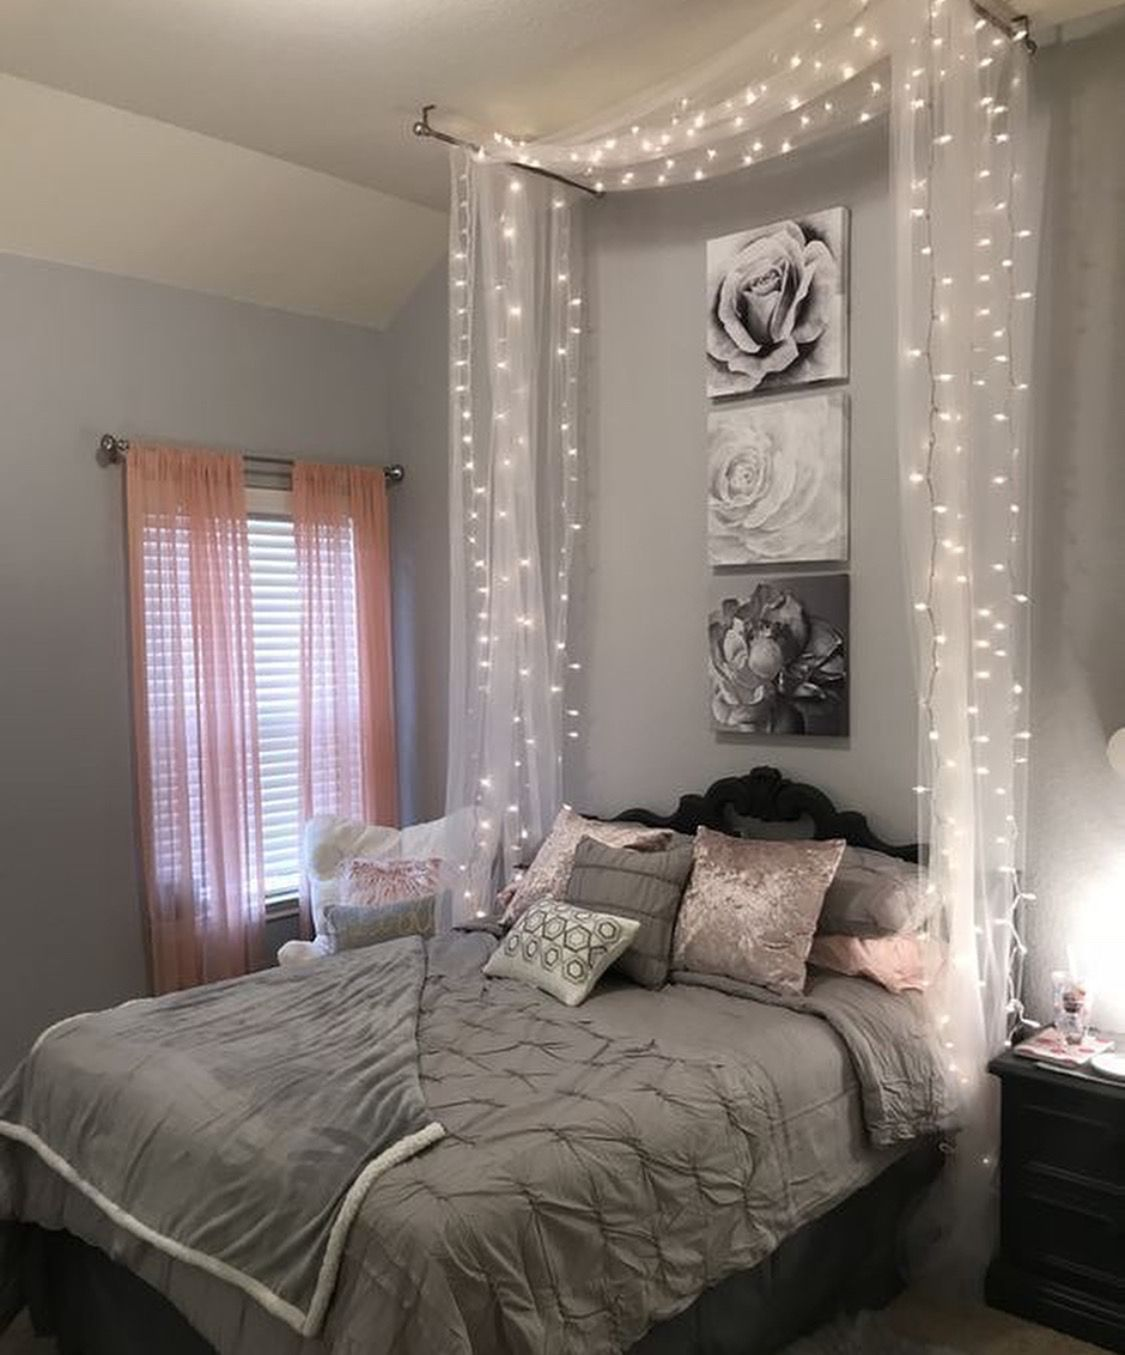 20+ Teen Room Design Ideas with Stylish Design Inspiration